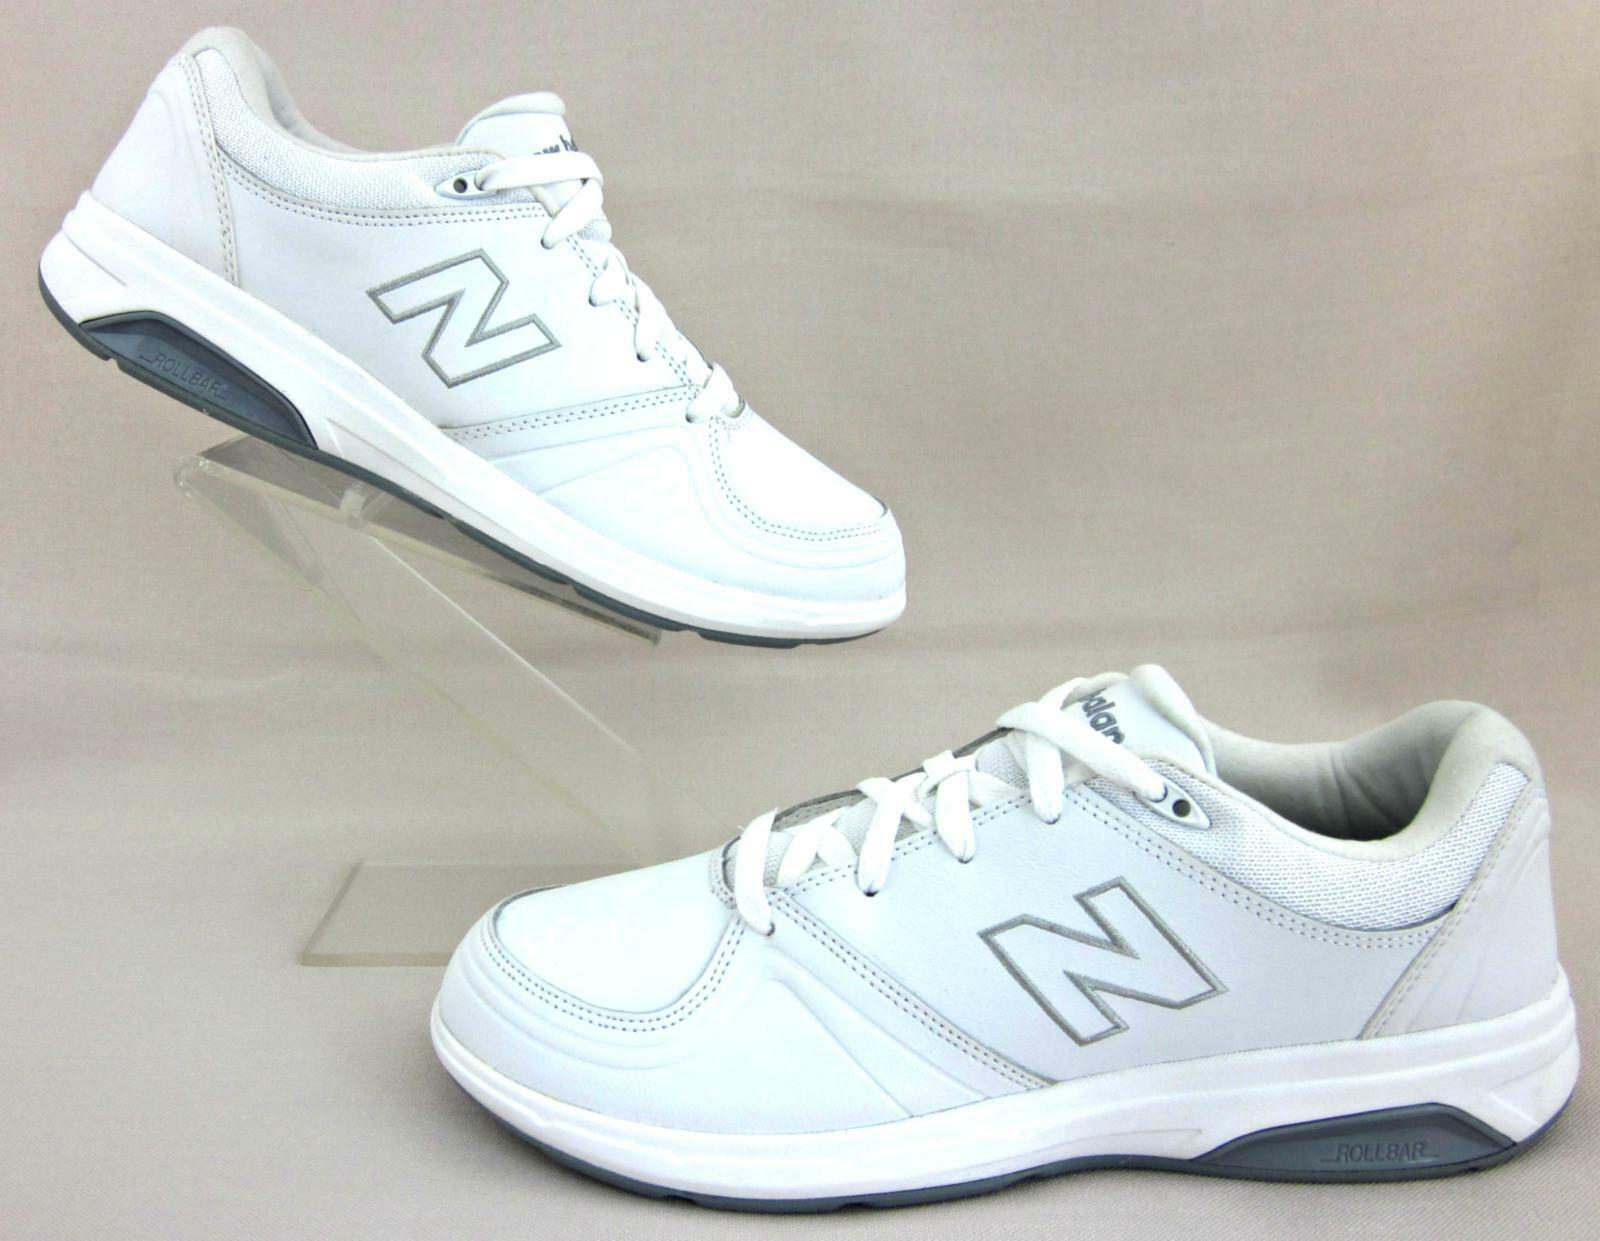 NEW New Balance 813 femmes  Walking  Chaussures blanc  Leather US 10.5B